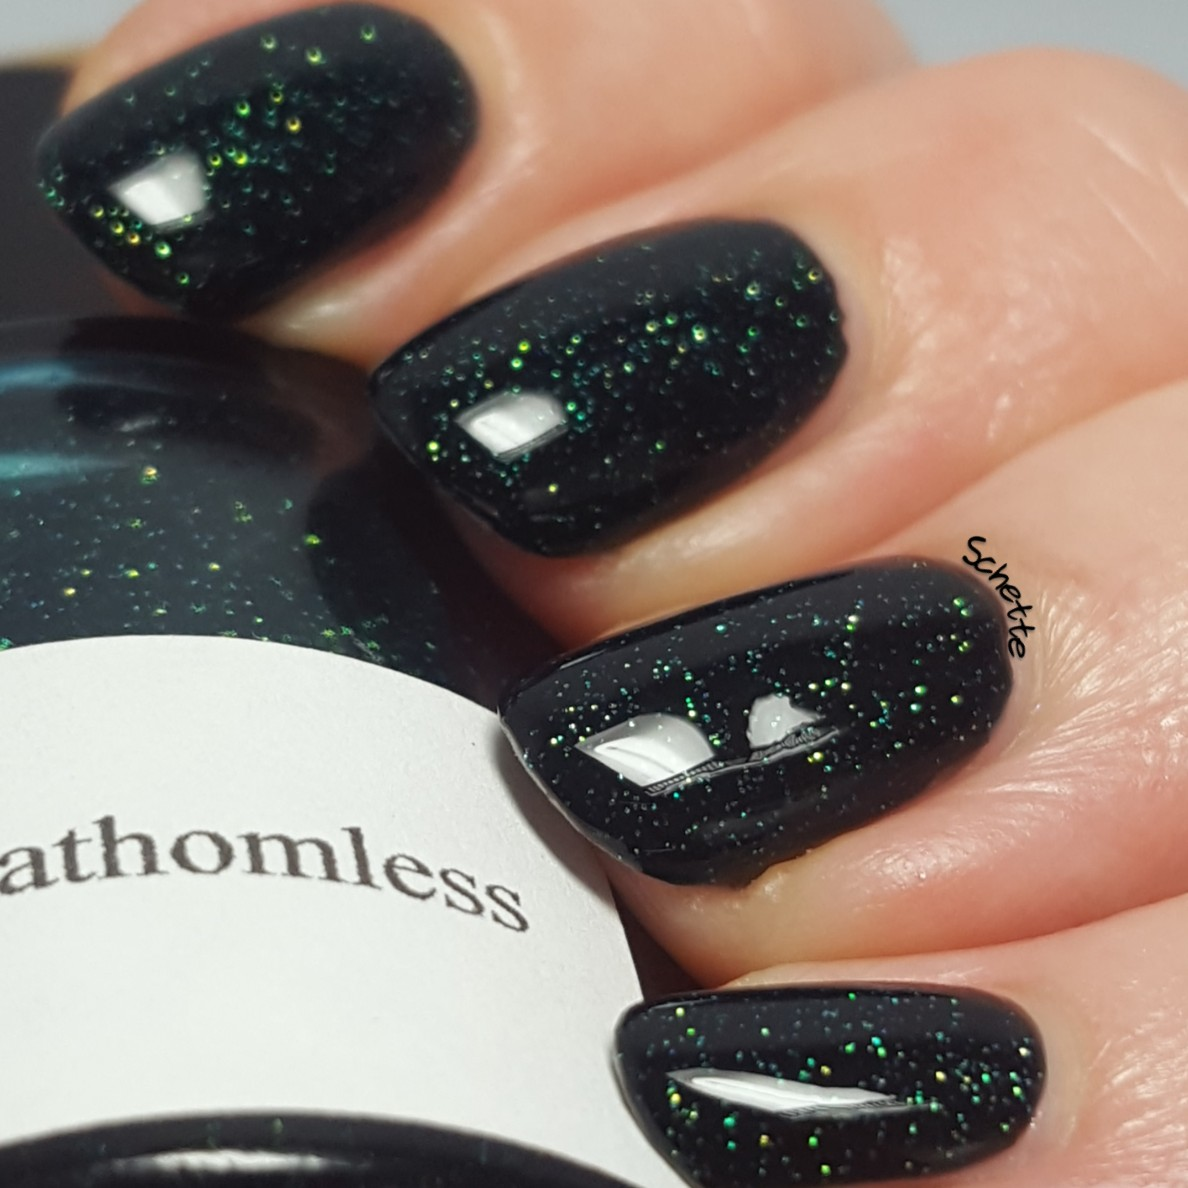 Girly Bits - Fathomless